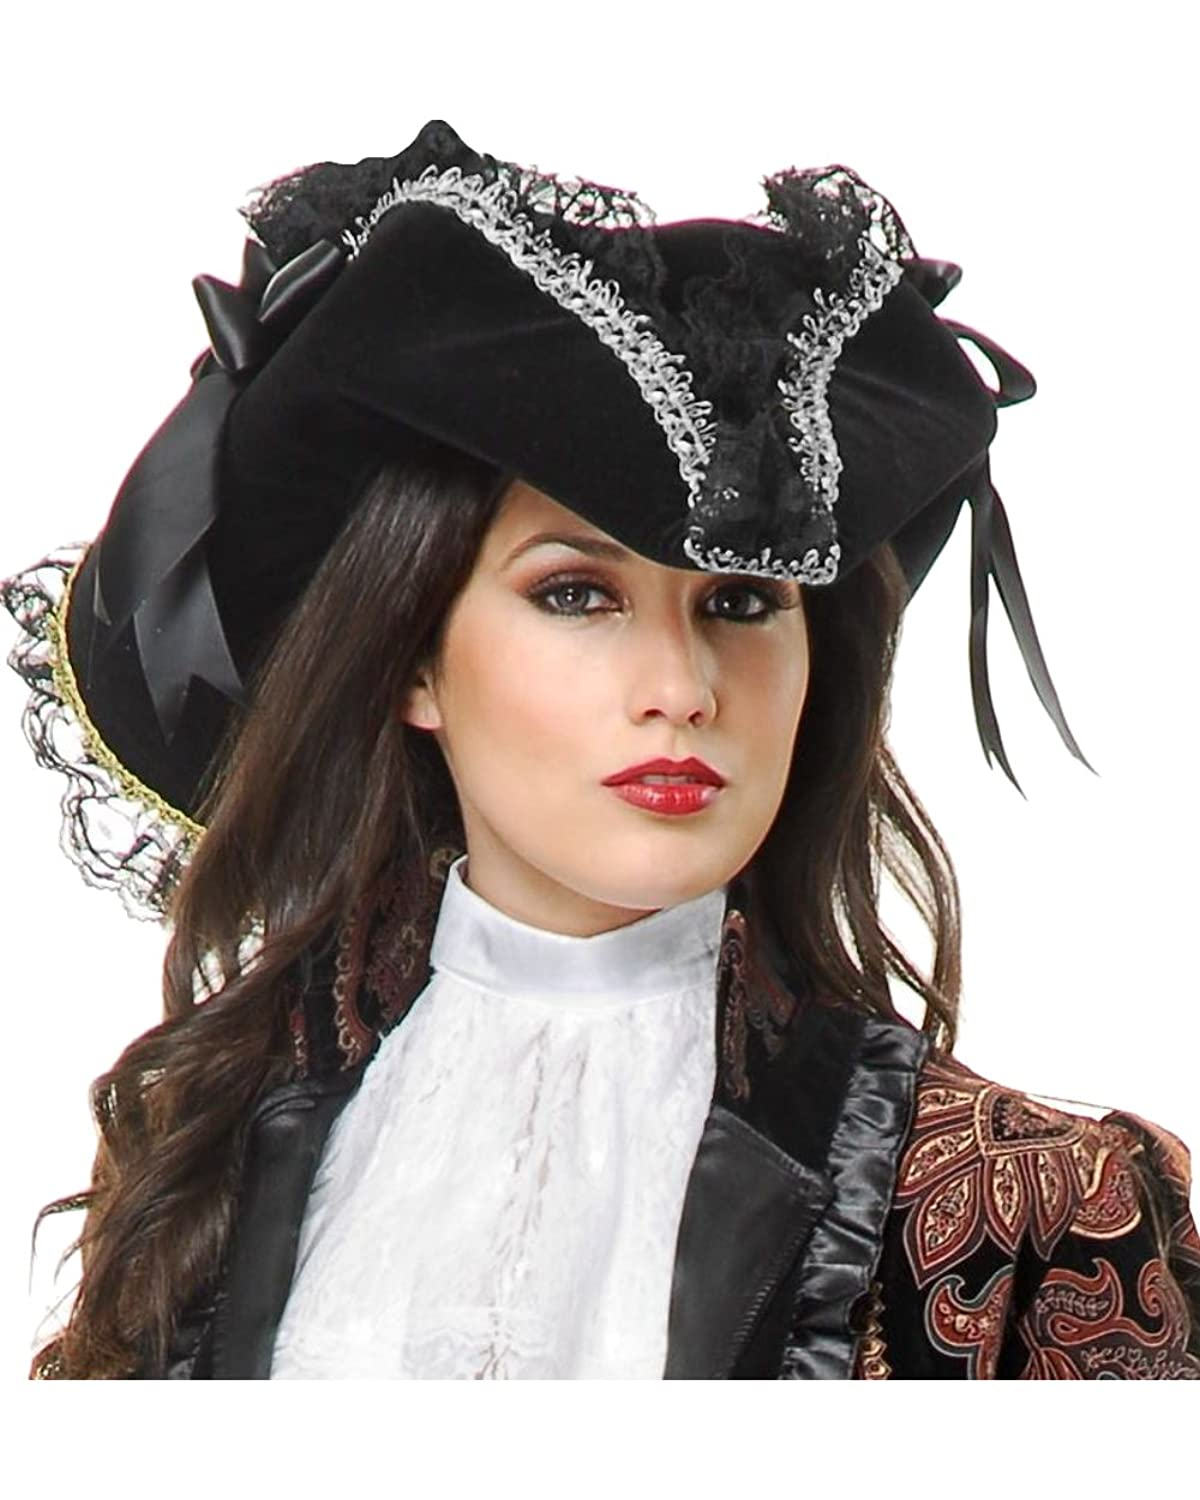 Deluxe Black Velvet and Lace Silver Trim Lady Pirate Hat with Black Ribbons d8285820508